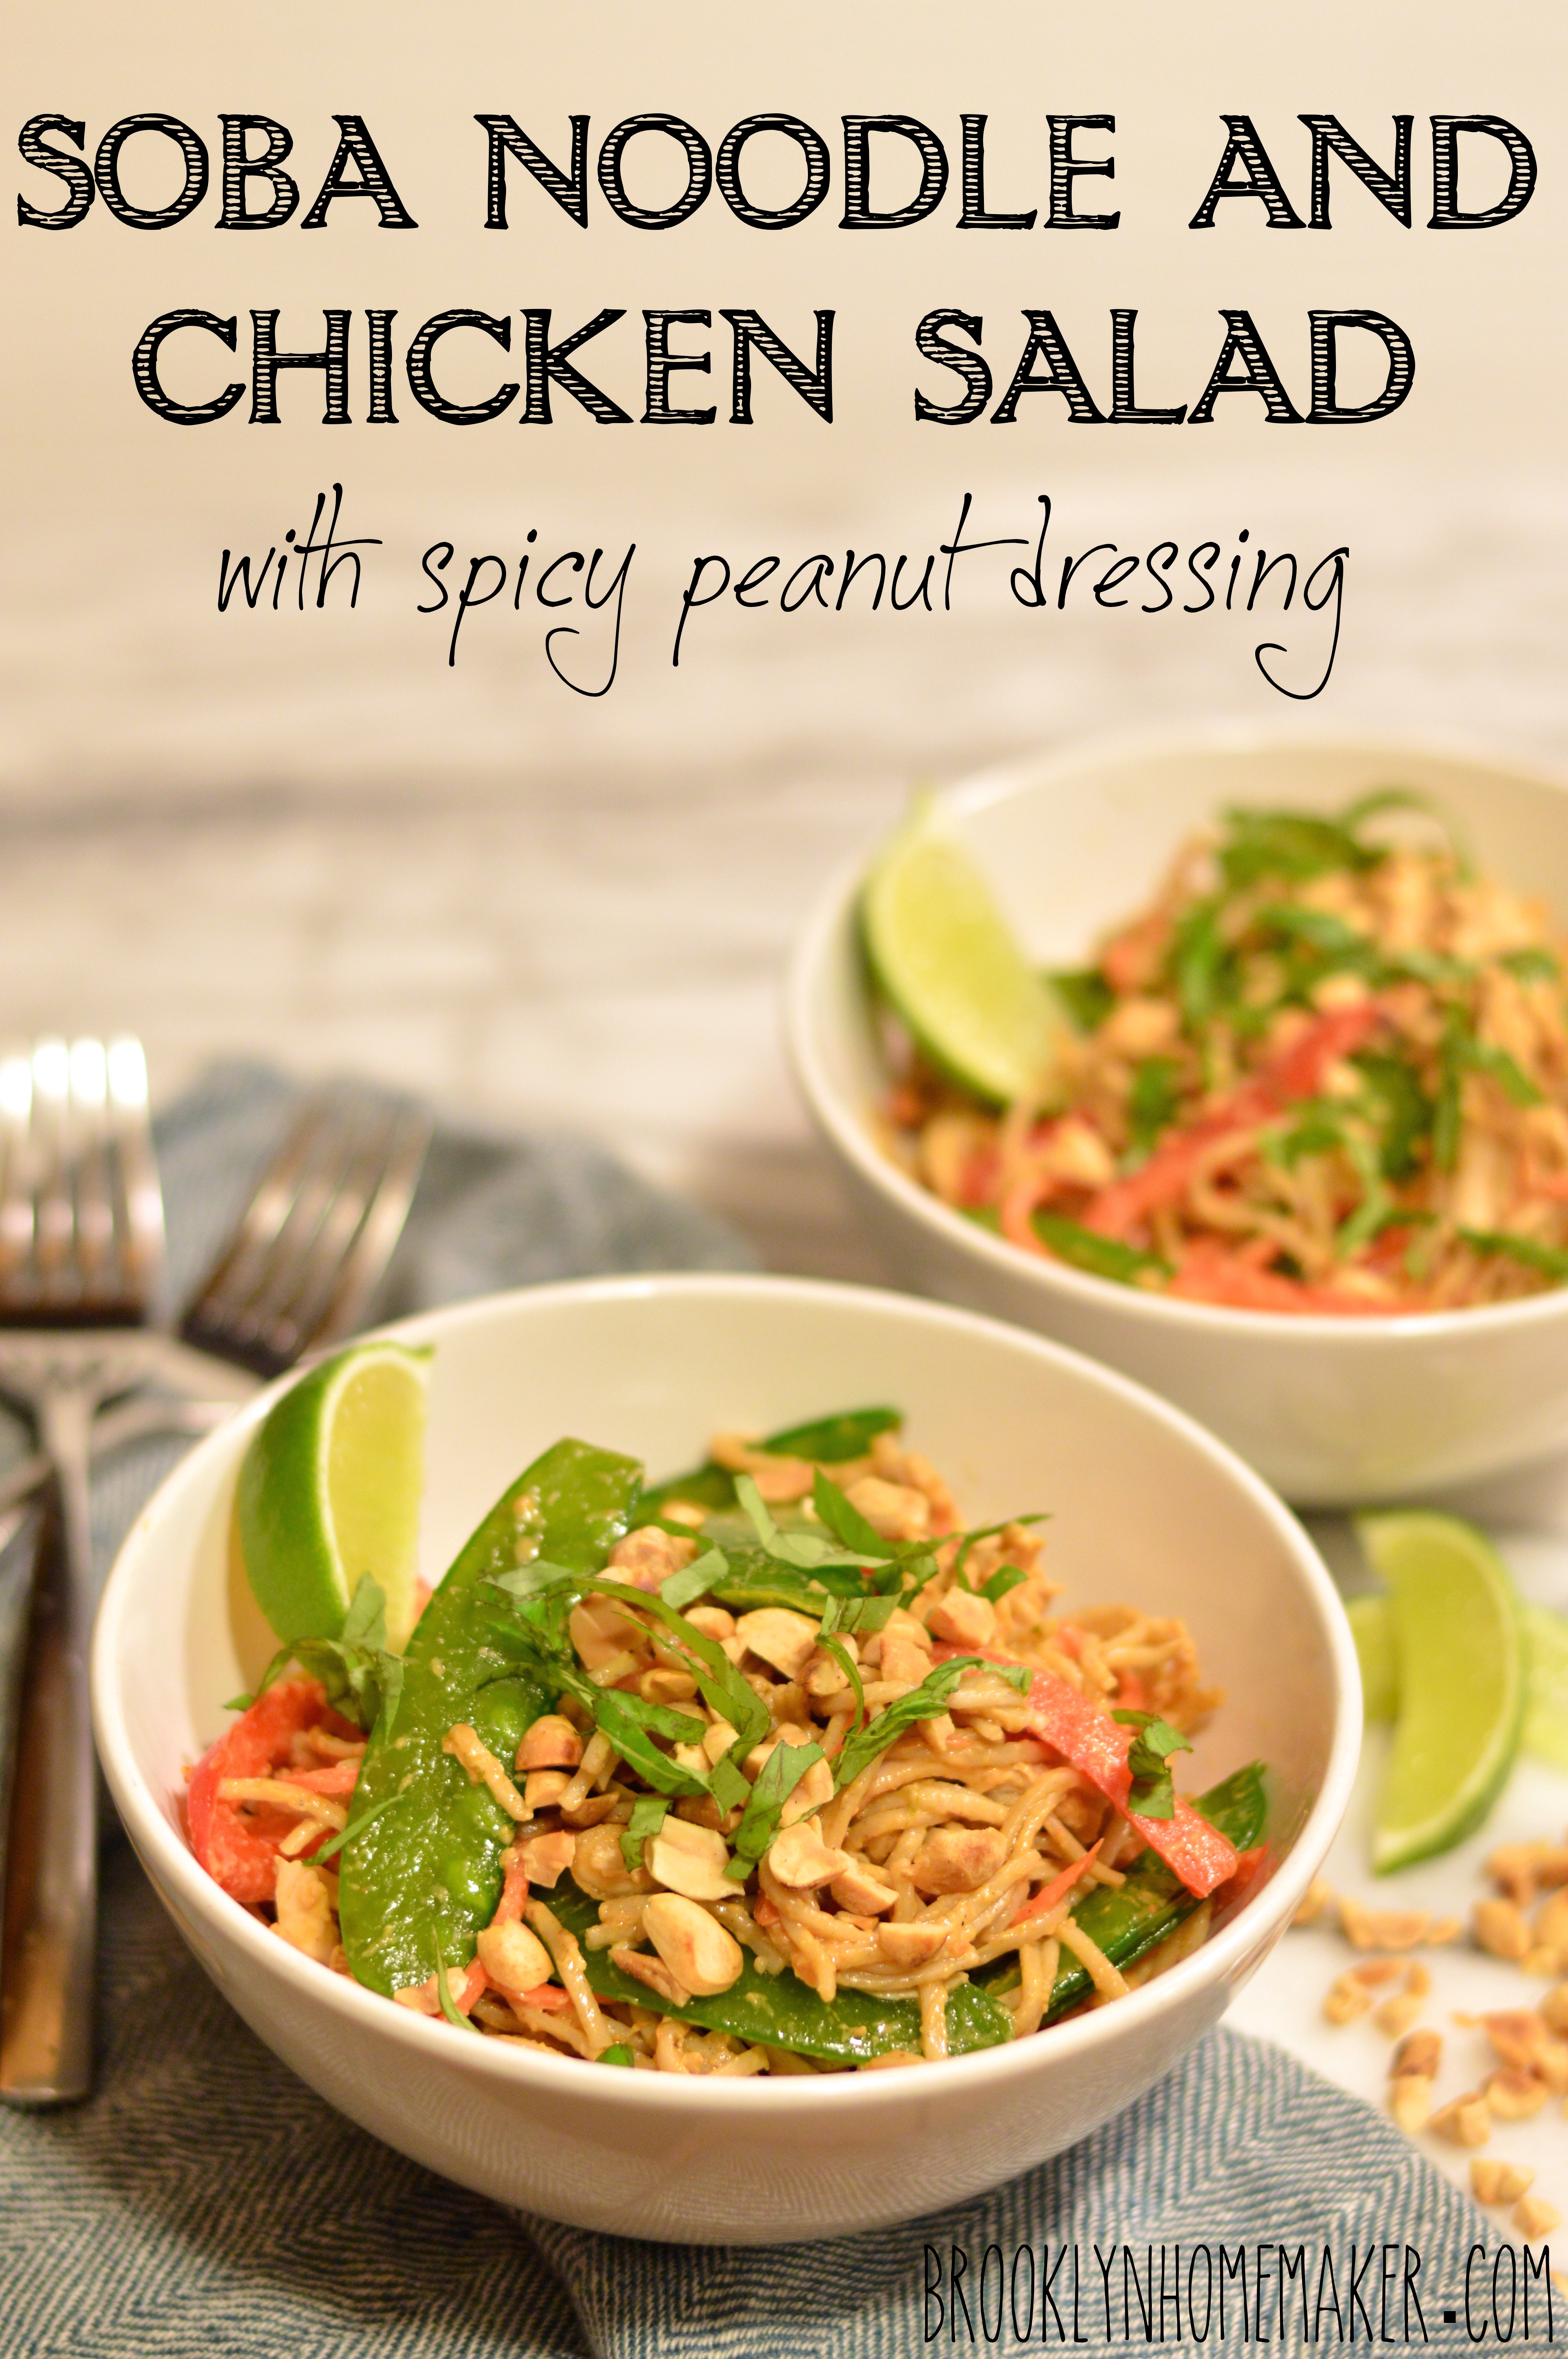 soba noodle and chicken salad with spicy peanut dressing